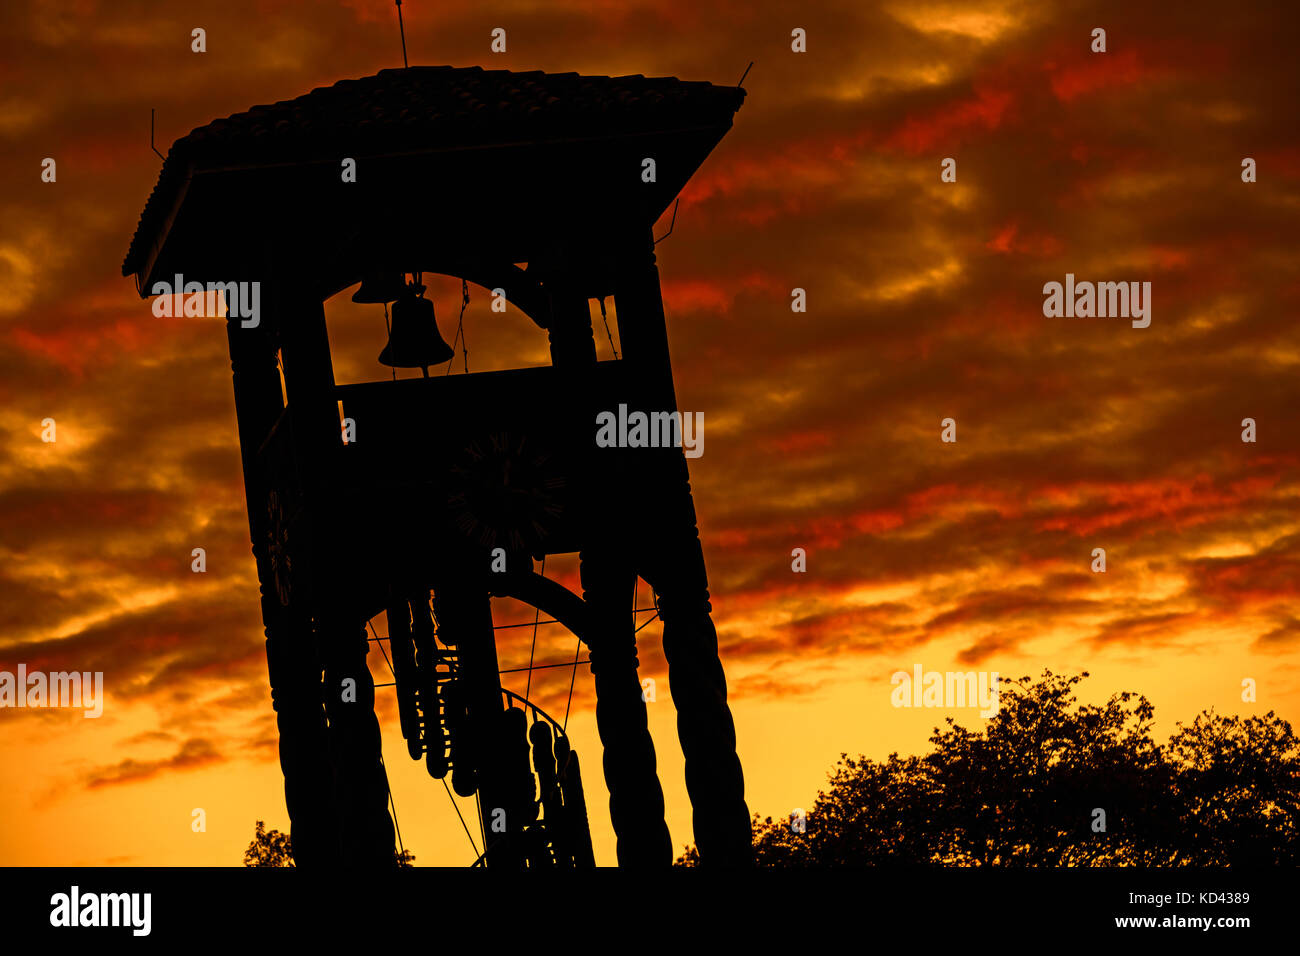 Wooden belltower of the Jesuit Church of the Missions silhouetted against sunset at Concepción, Ñuflo - Stock Image